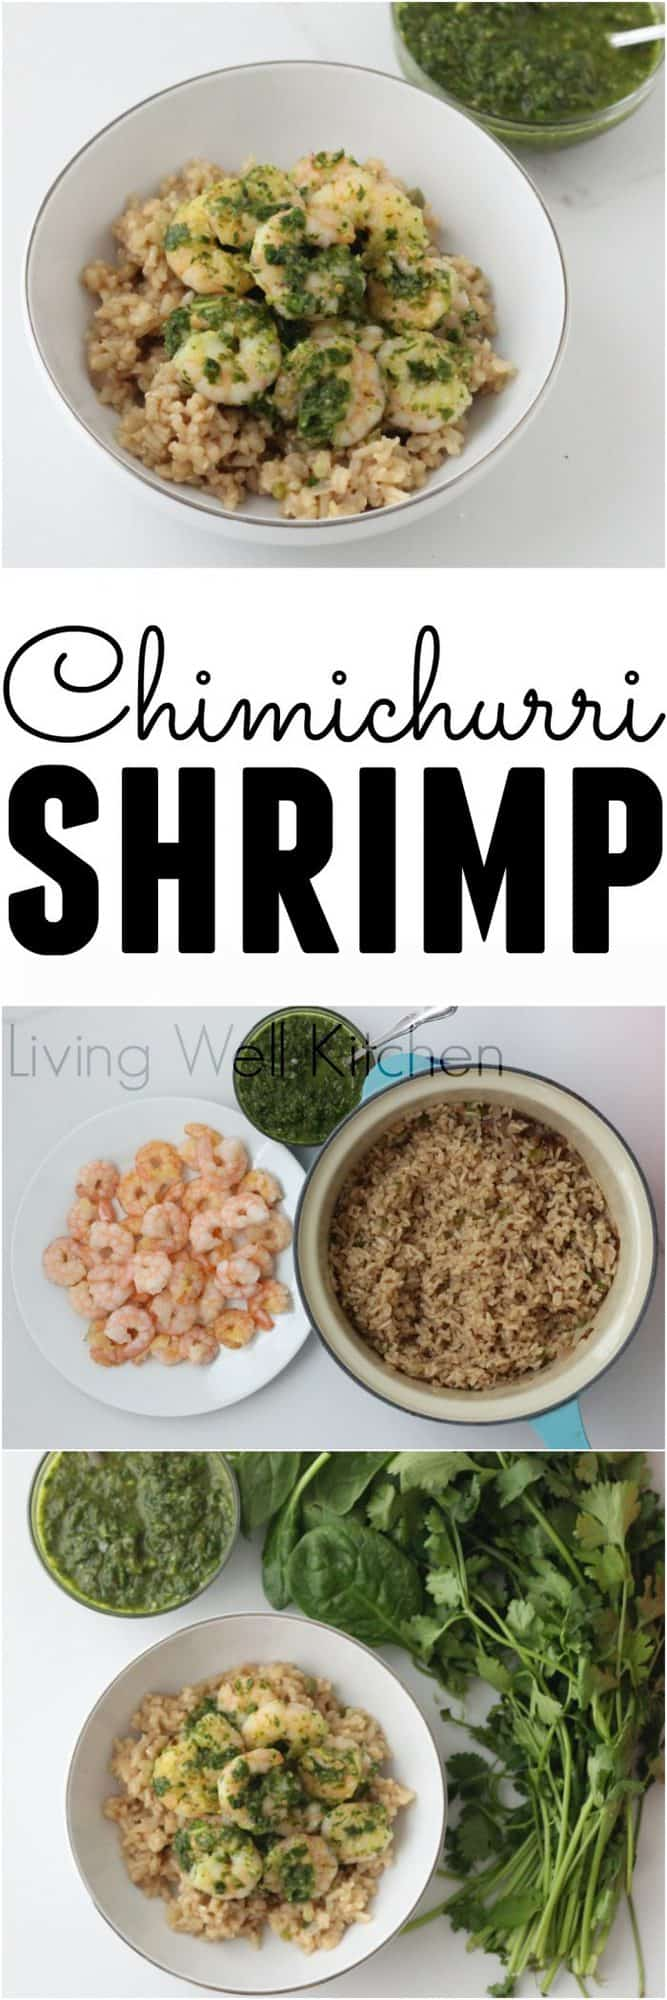 Chimichurri is an herby, spicy green sauce that is perfect for this nourishing shrimp and rice dish. This gluten free Chimichurri Shrimp from @memeinge is a veggie-packed dish with tons of flavor